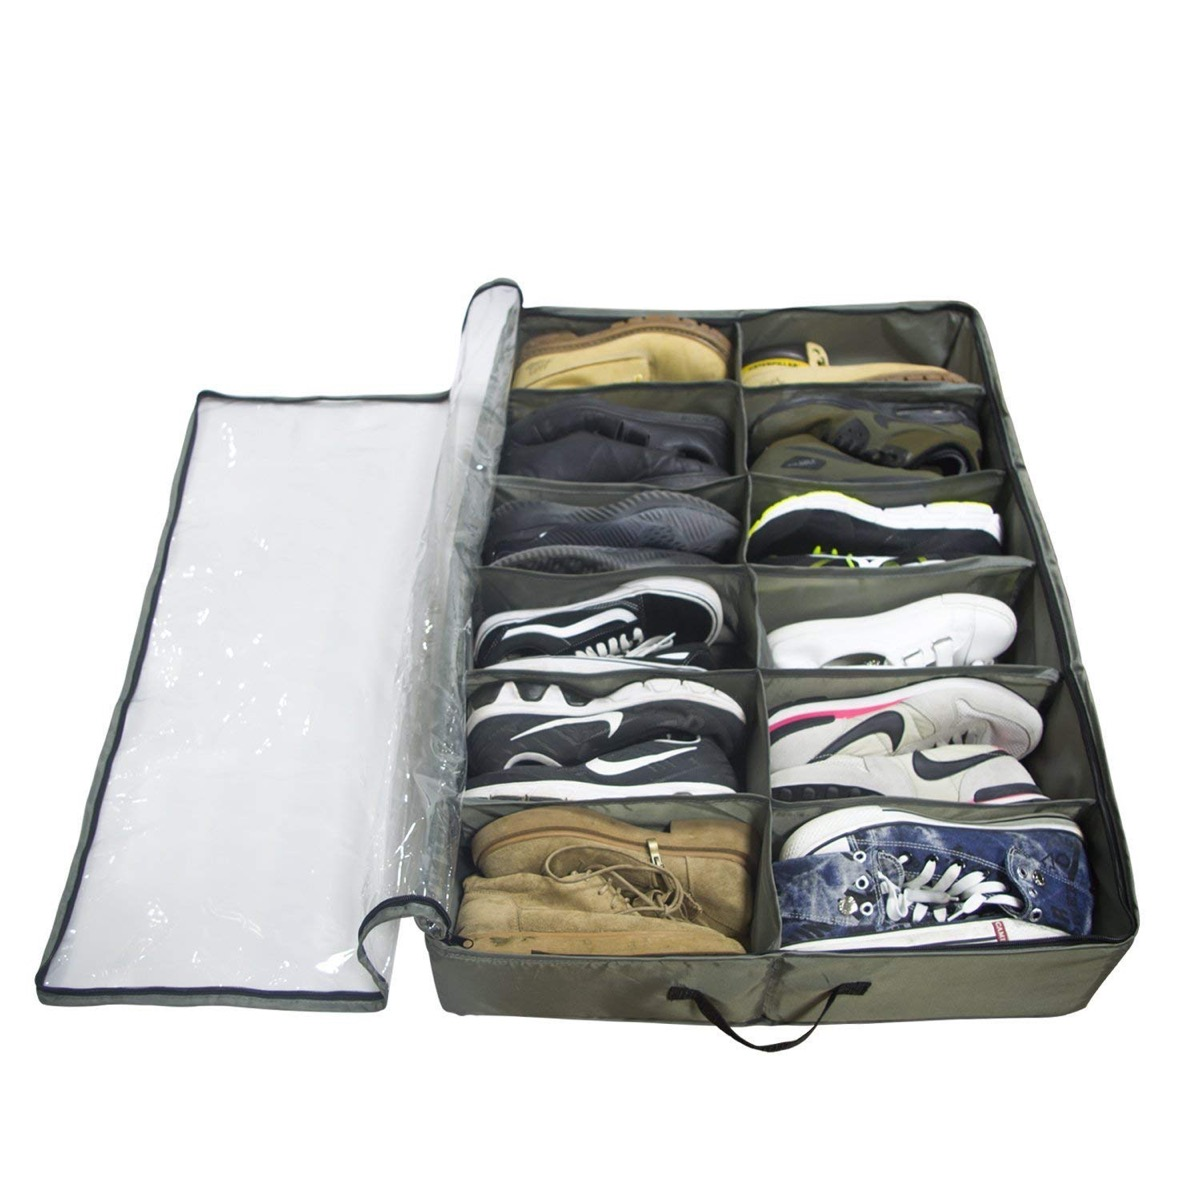 Under-the-bed shoe storage bin {organizational products on Amazon}